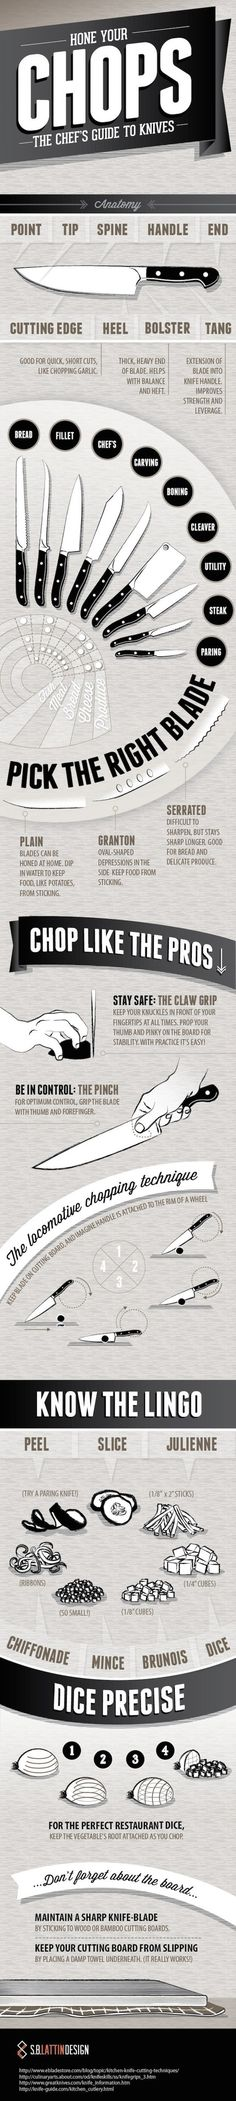 Do You Know How to Chop Like a Pro? [INFOGRAPHIC]